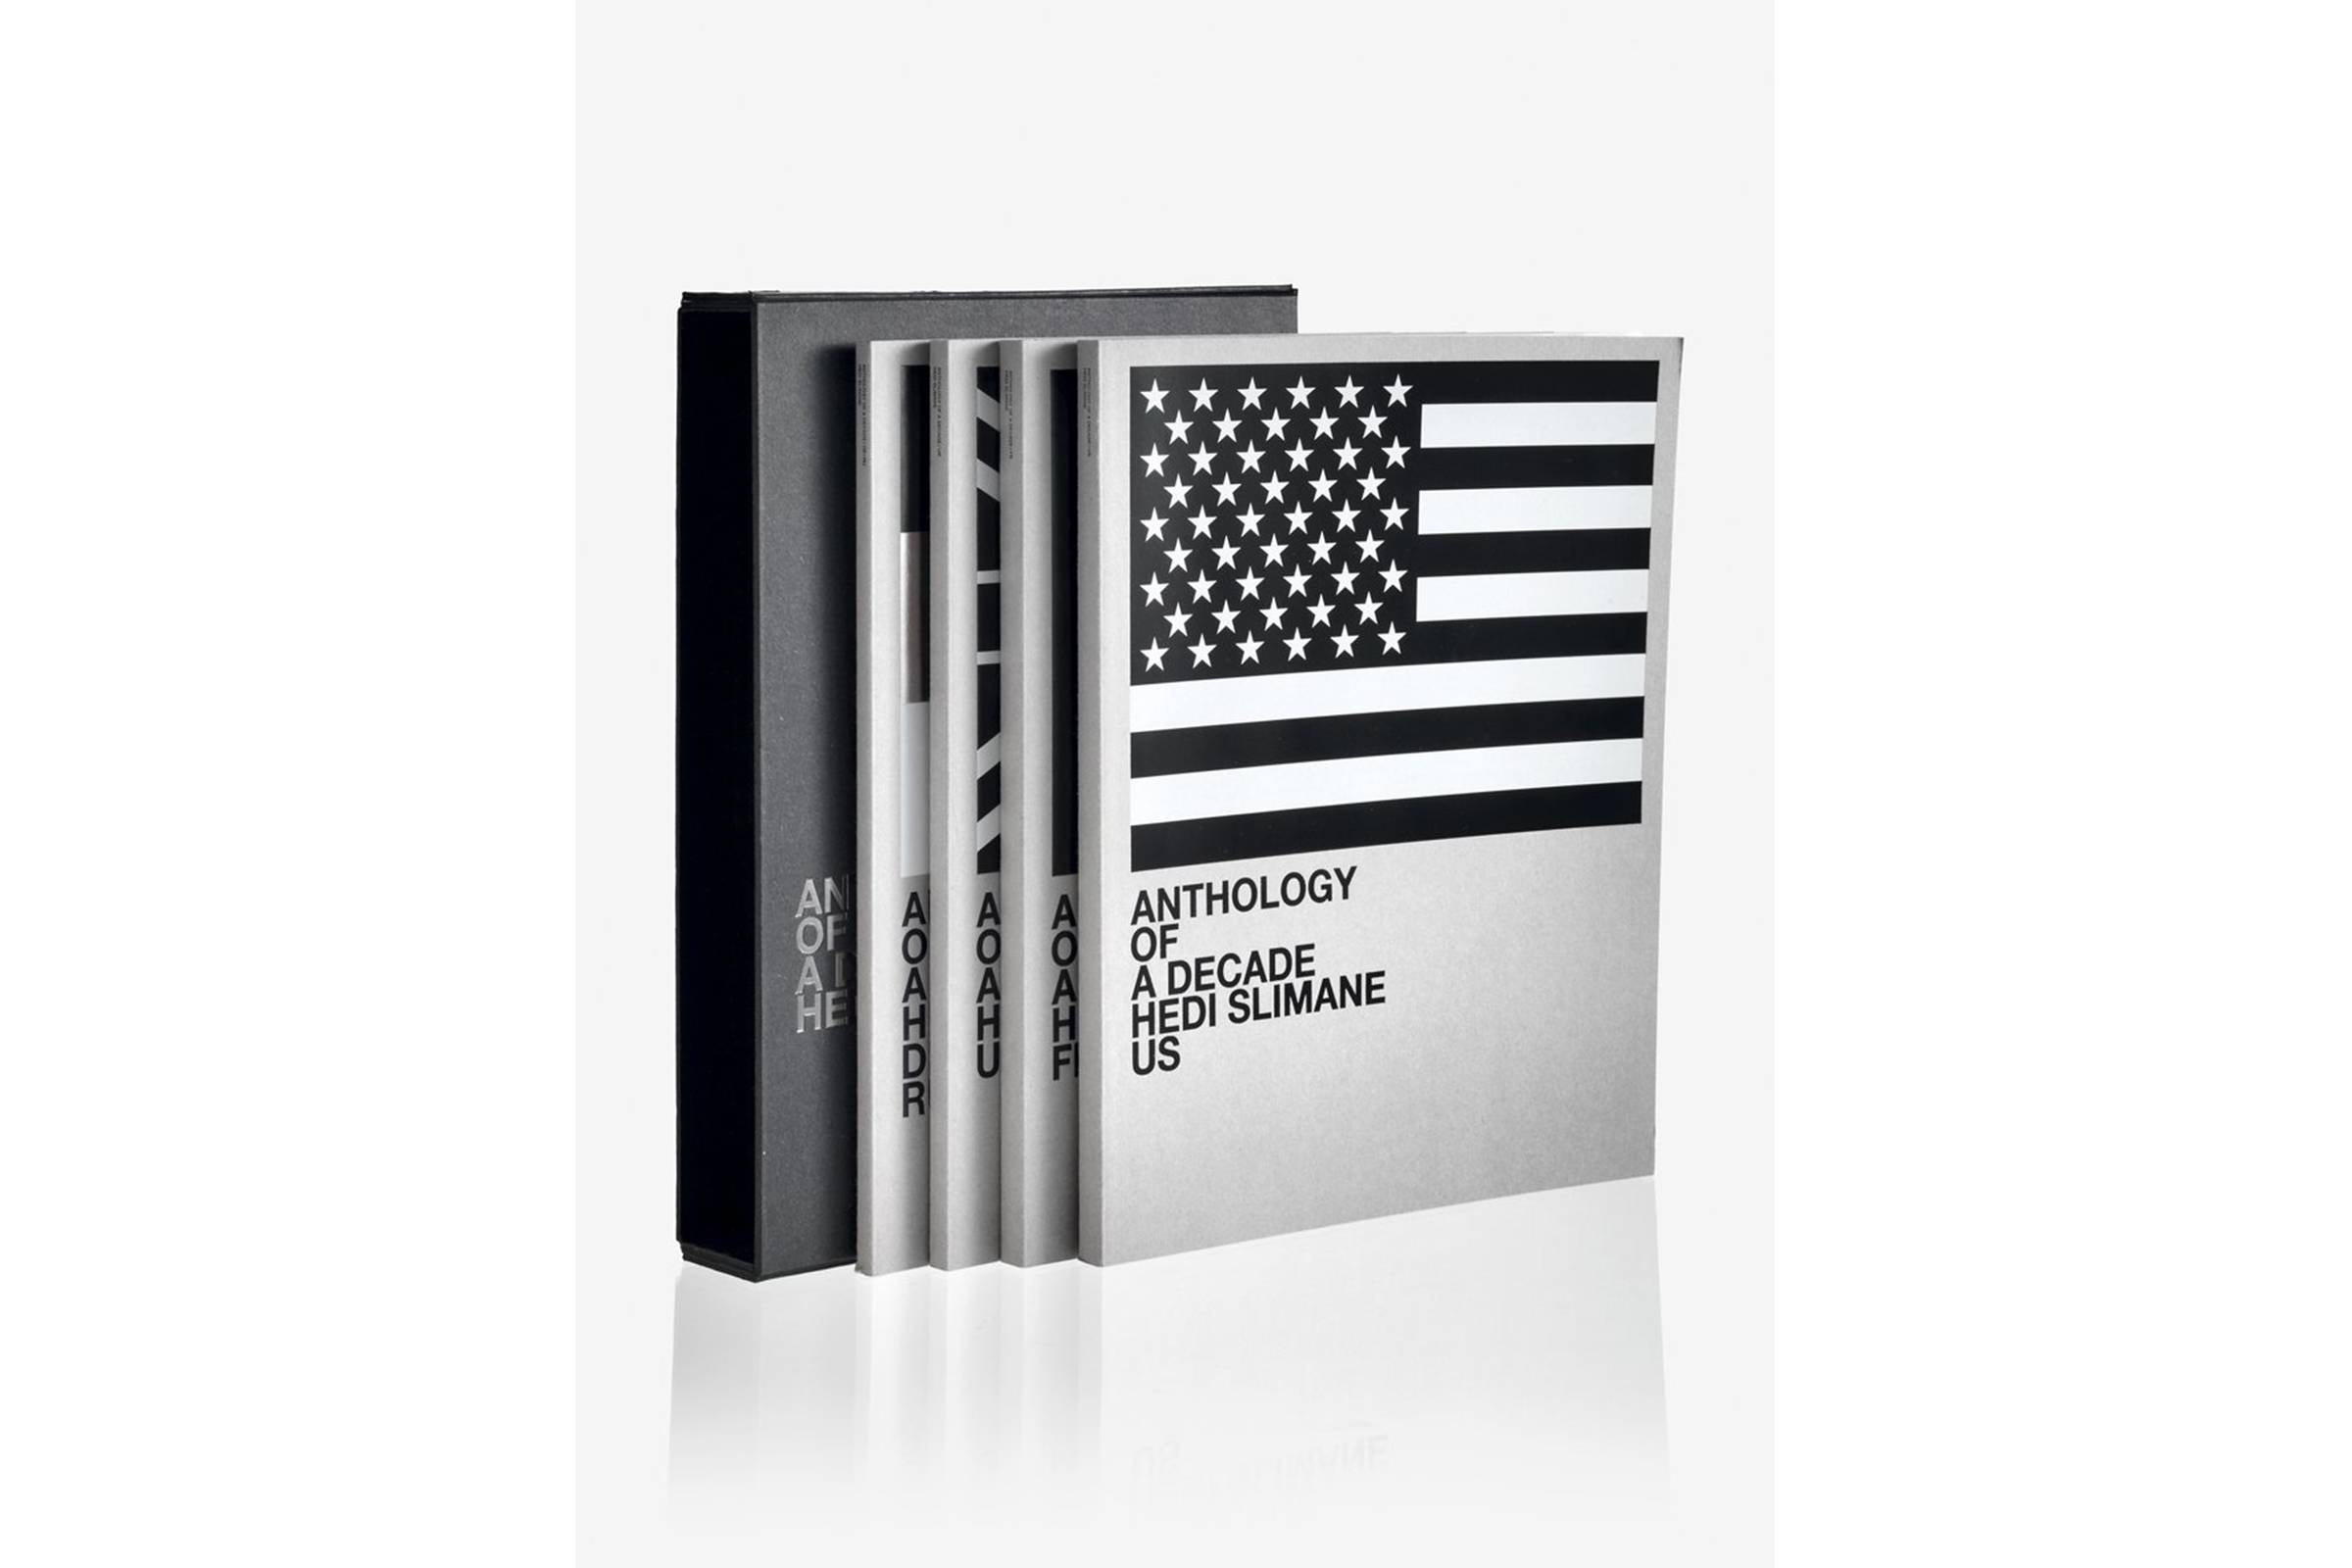 Anthology of A Decade by Hedi Slimane